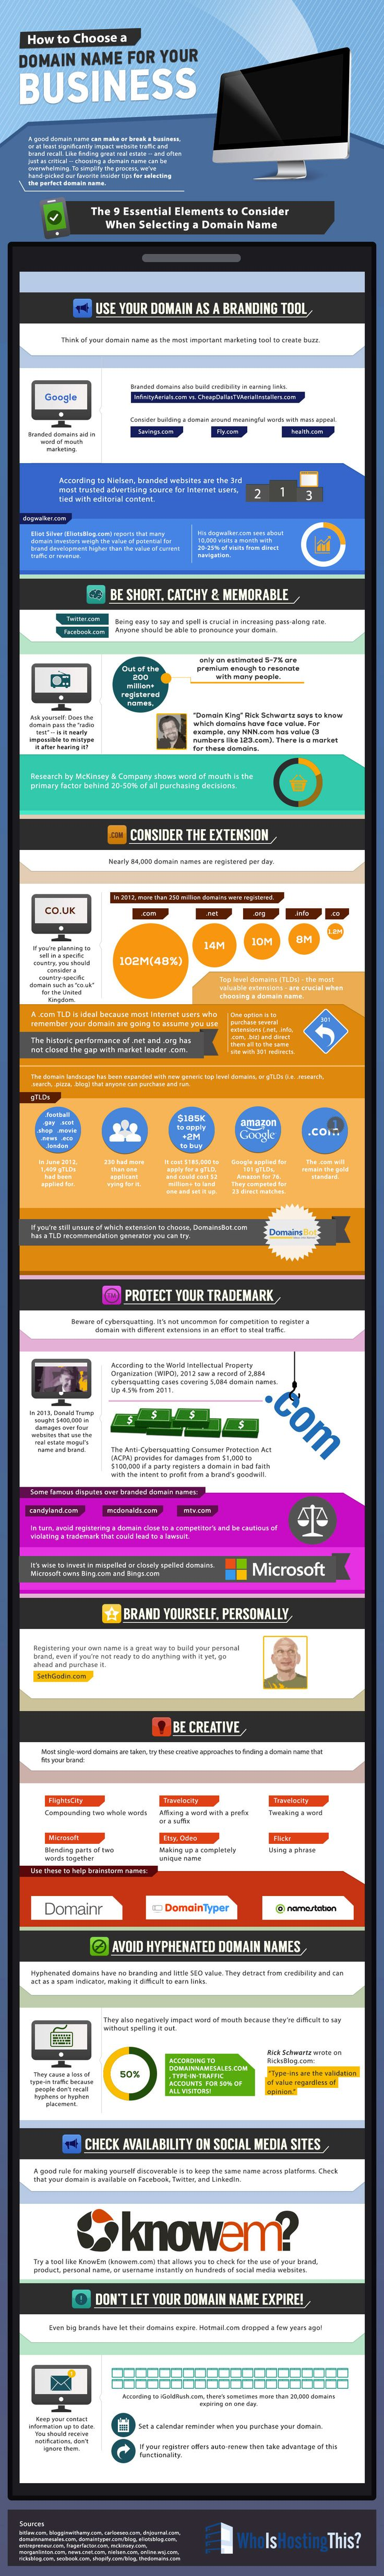 9 Essential Elements of Choosing a Domain Name (Infographic)  Read more: http://www.entrepreneur.com/article/228466#ixzz2g1IEa9a1